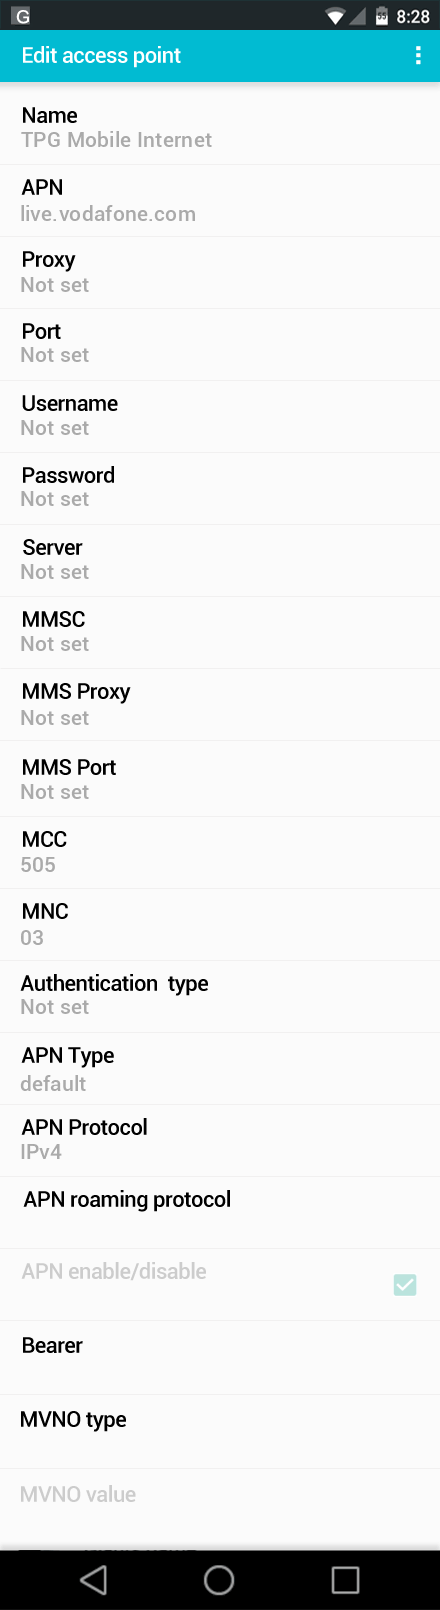 TPG Mobile Internet APN settings for Android screenshot